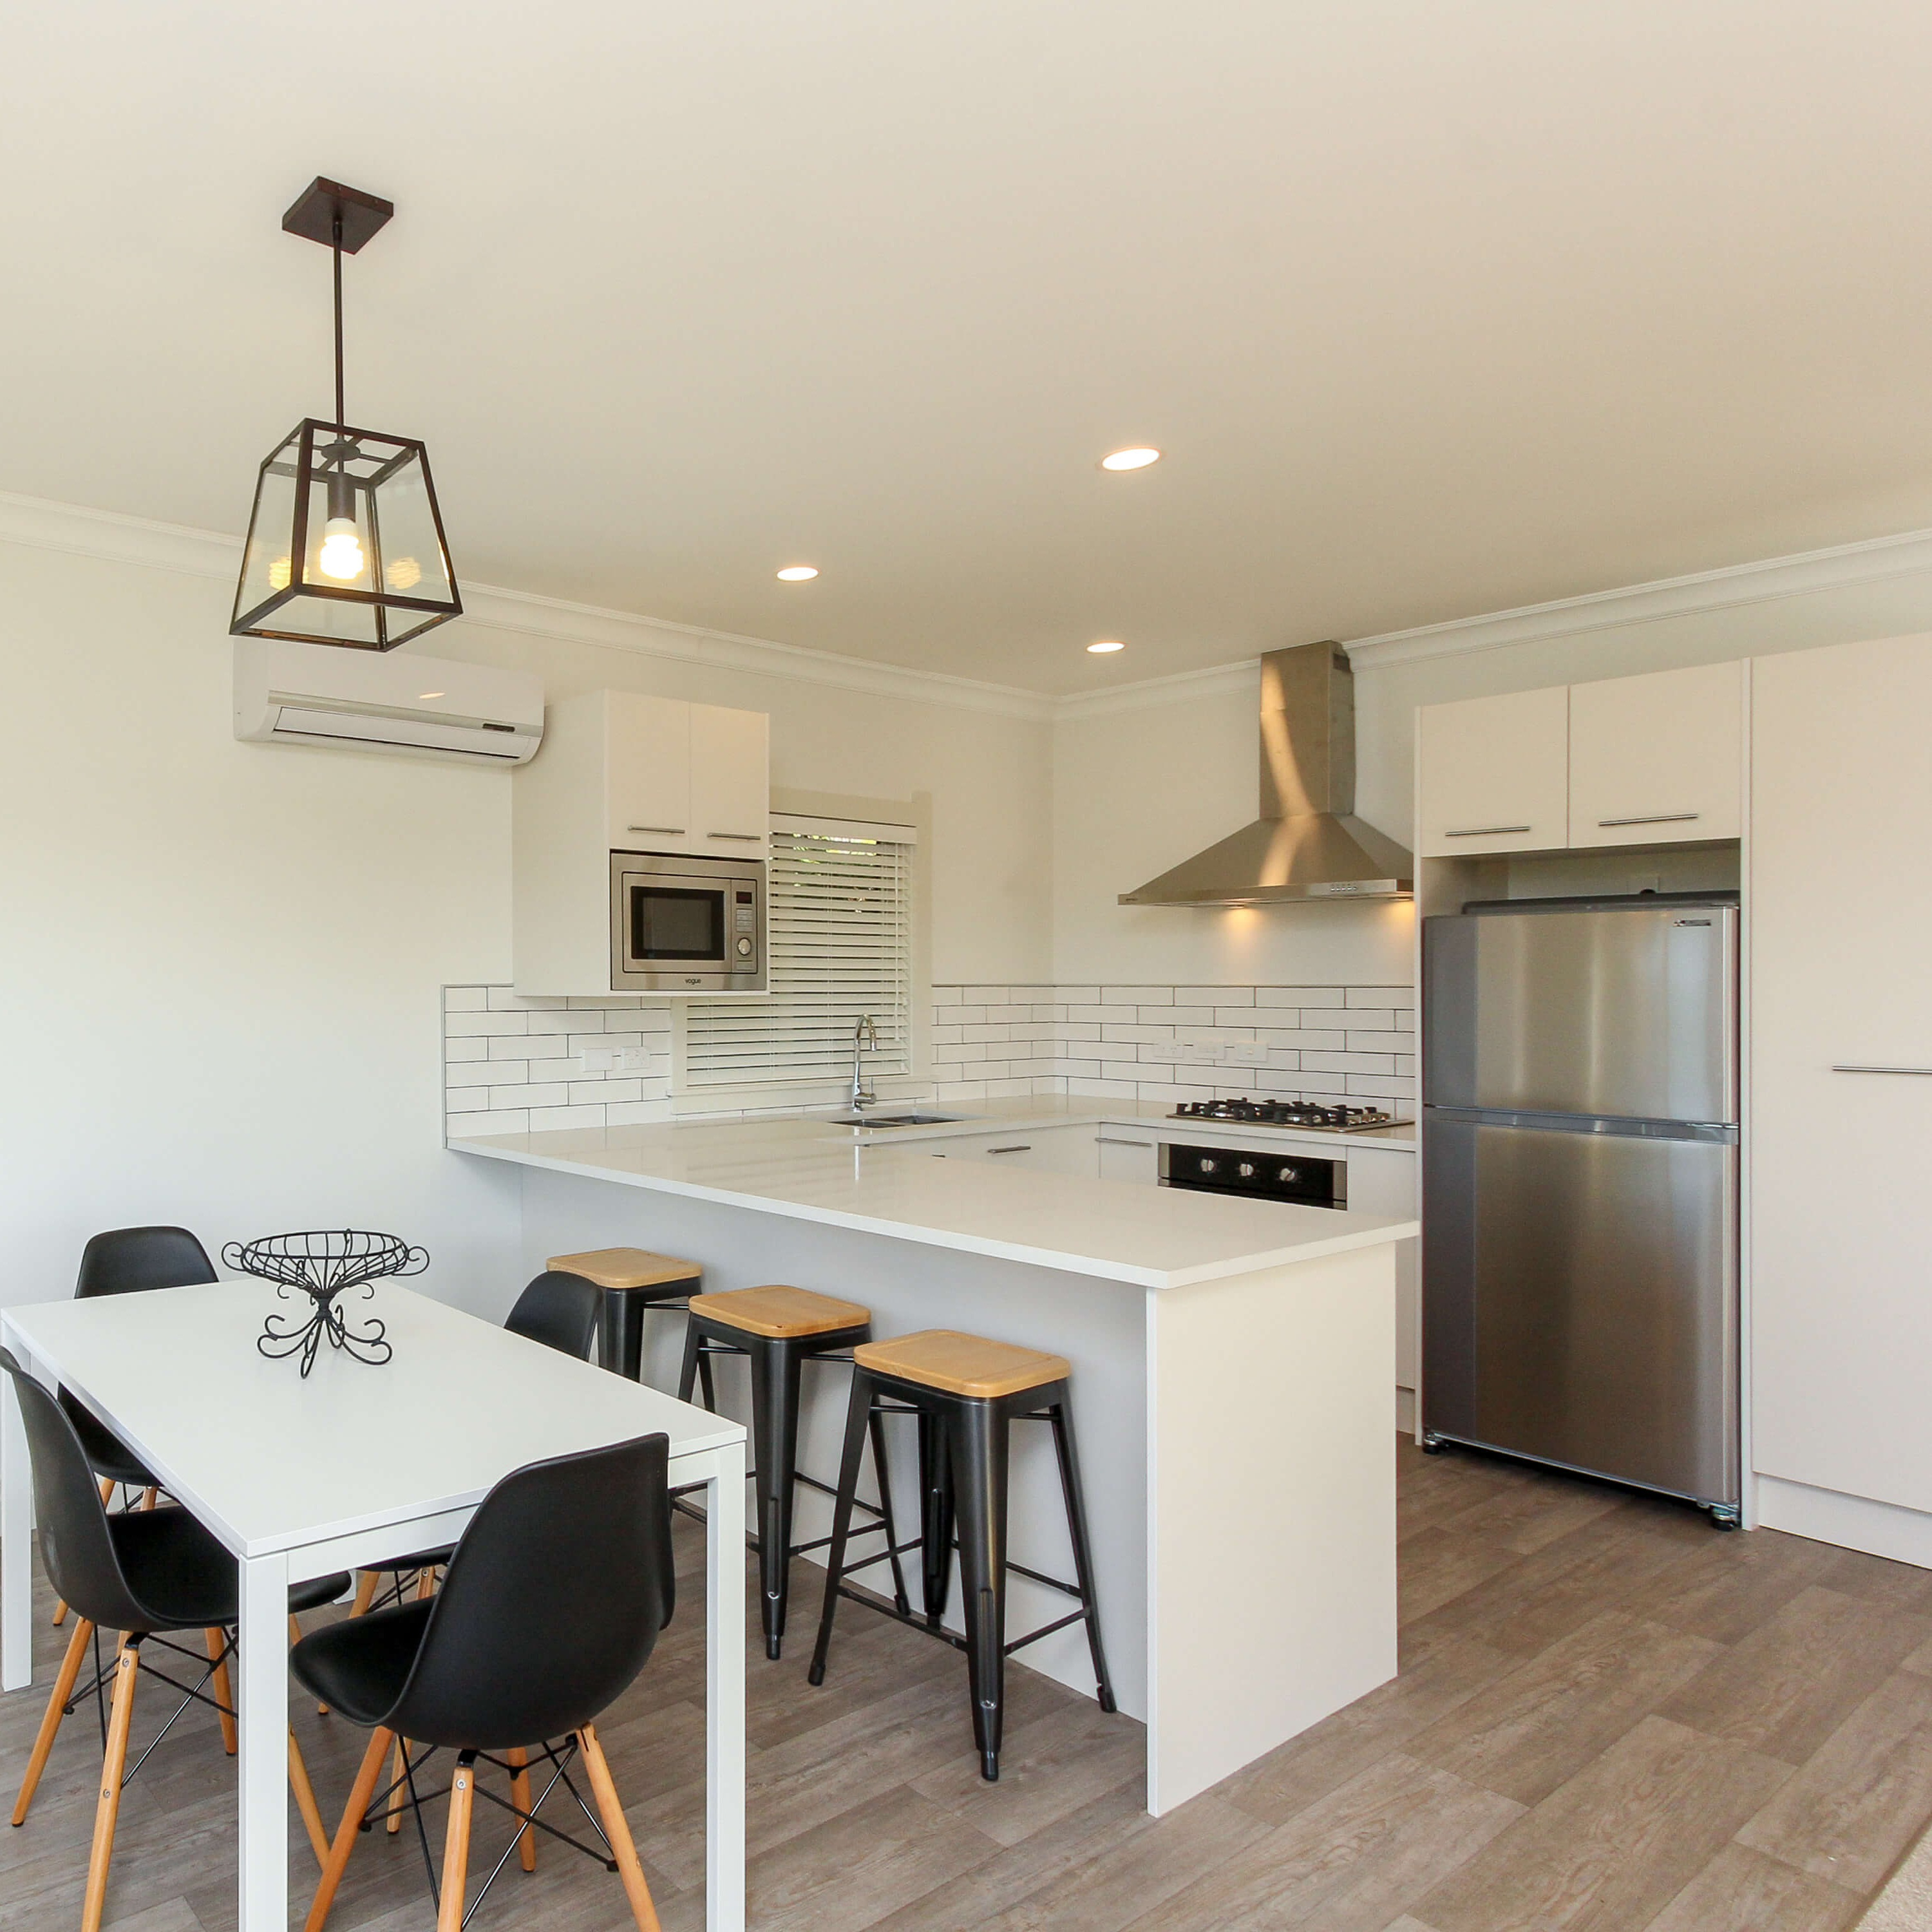 What appliances come with a prefab home